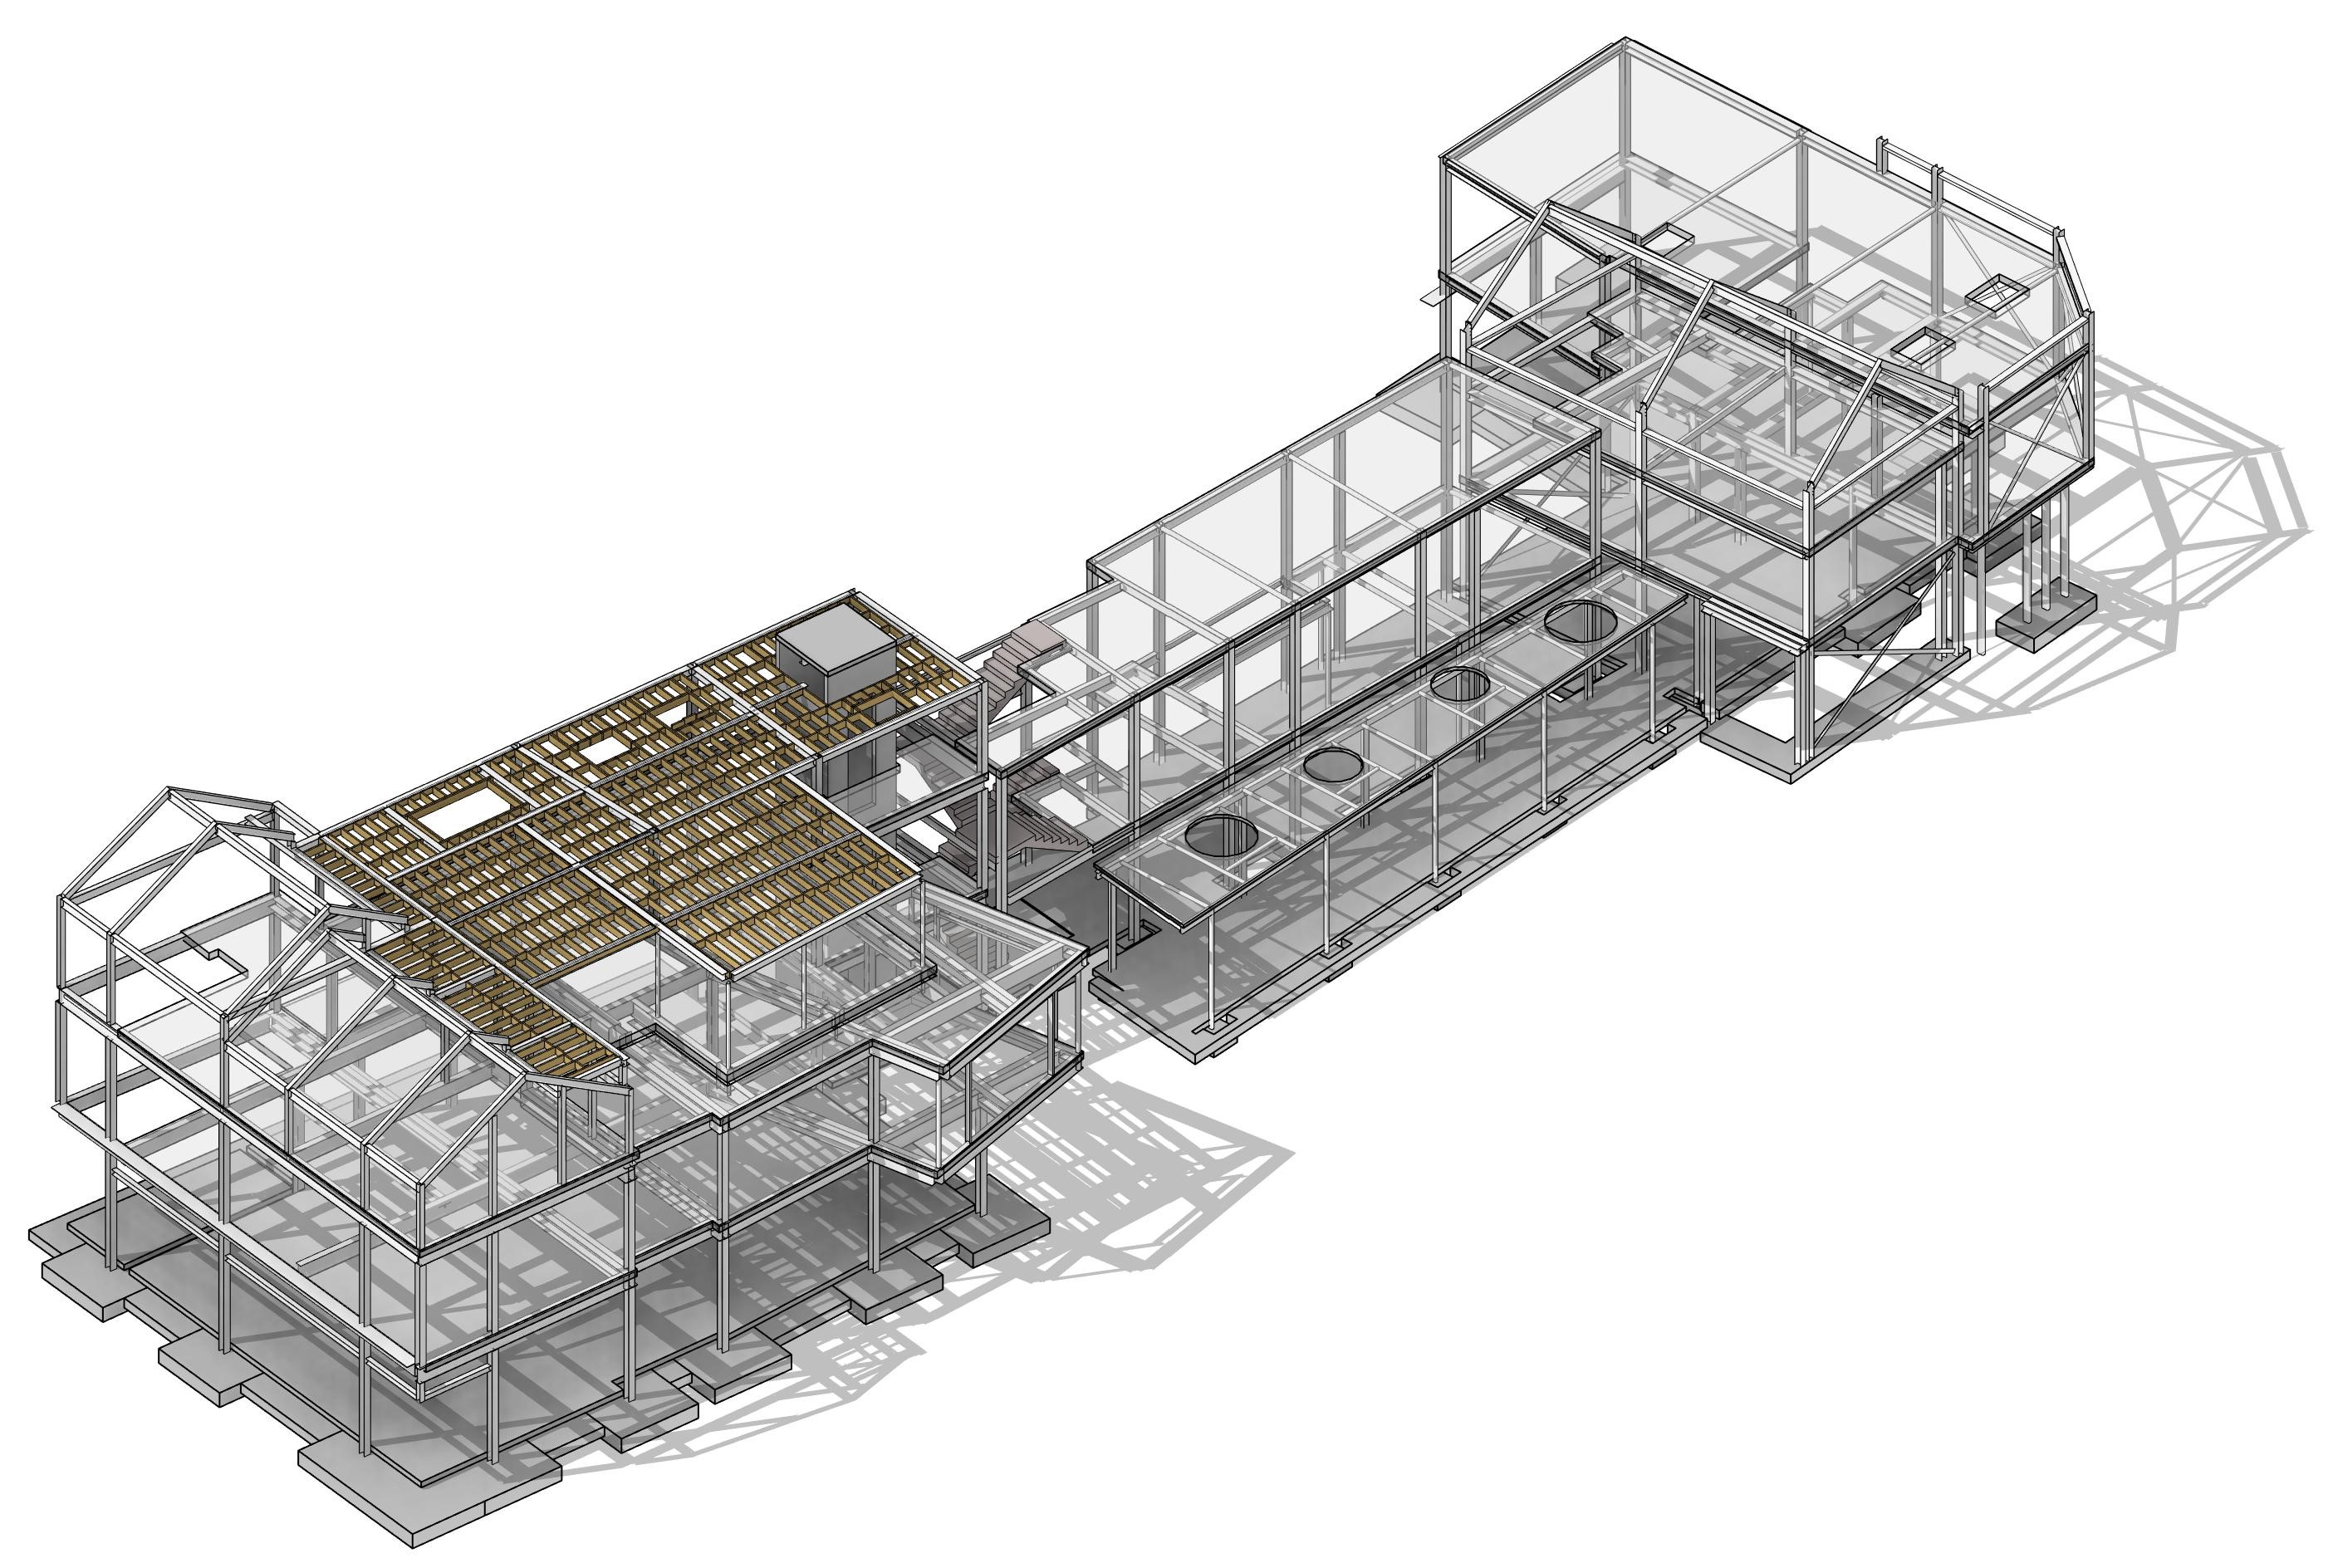 WHAT IS BIM MODELLING?